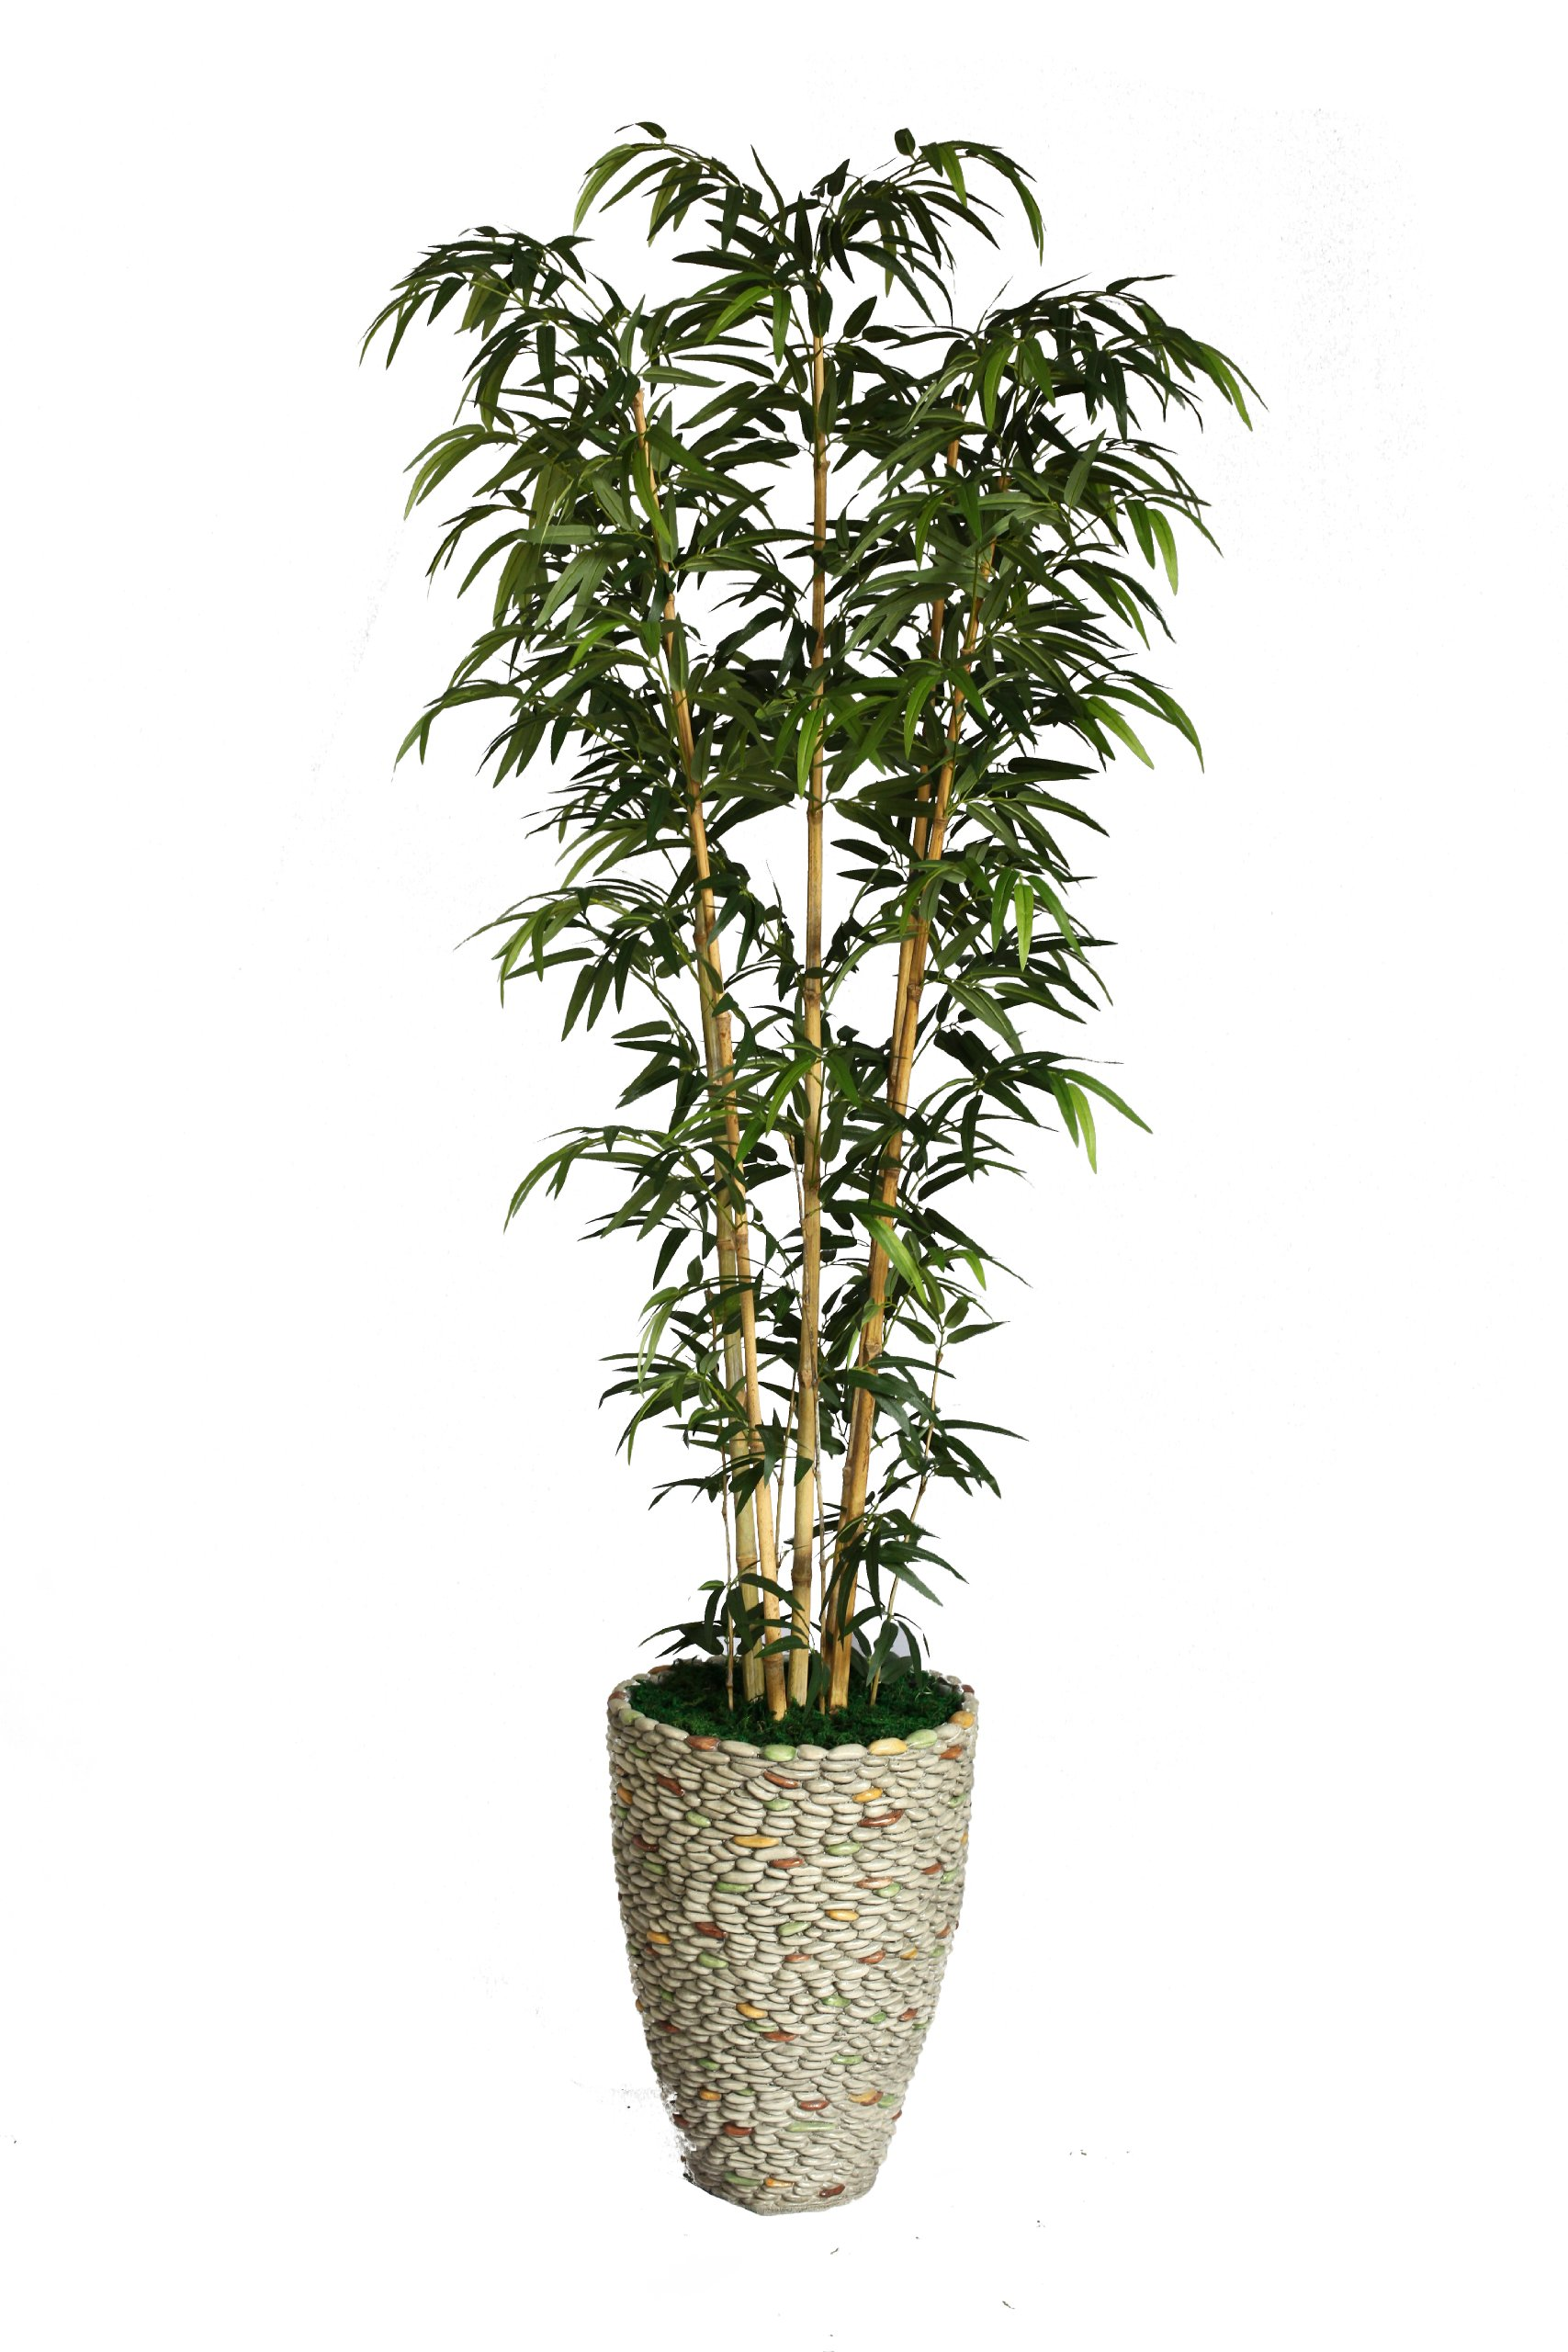 Laura Ashley VHX116209 86-Inch Natural Bamboo Tree in 16-Inch Fiber Stone Planter by Laura Ashley (Image #1)